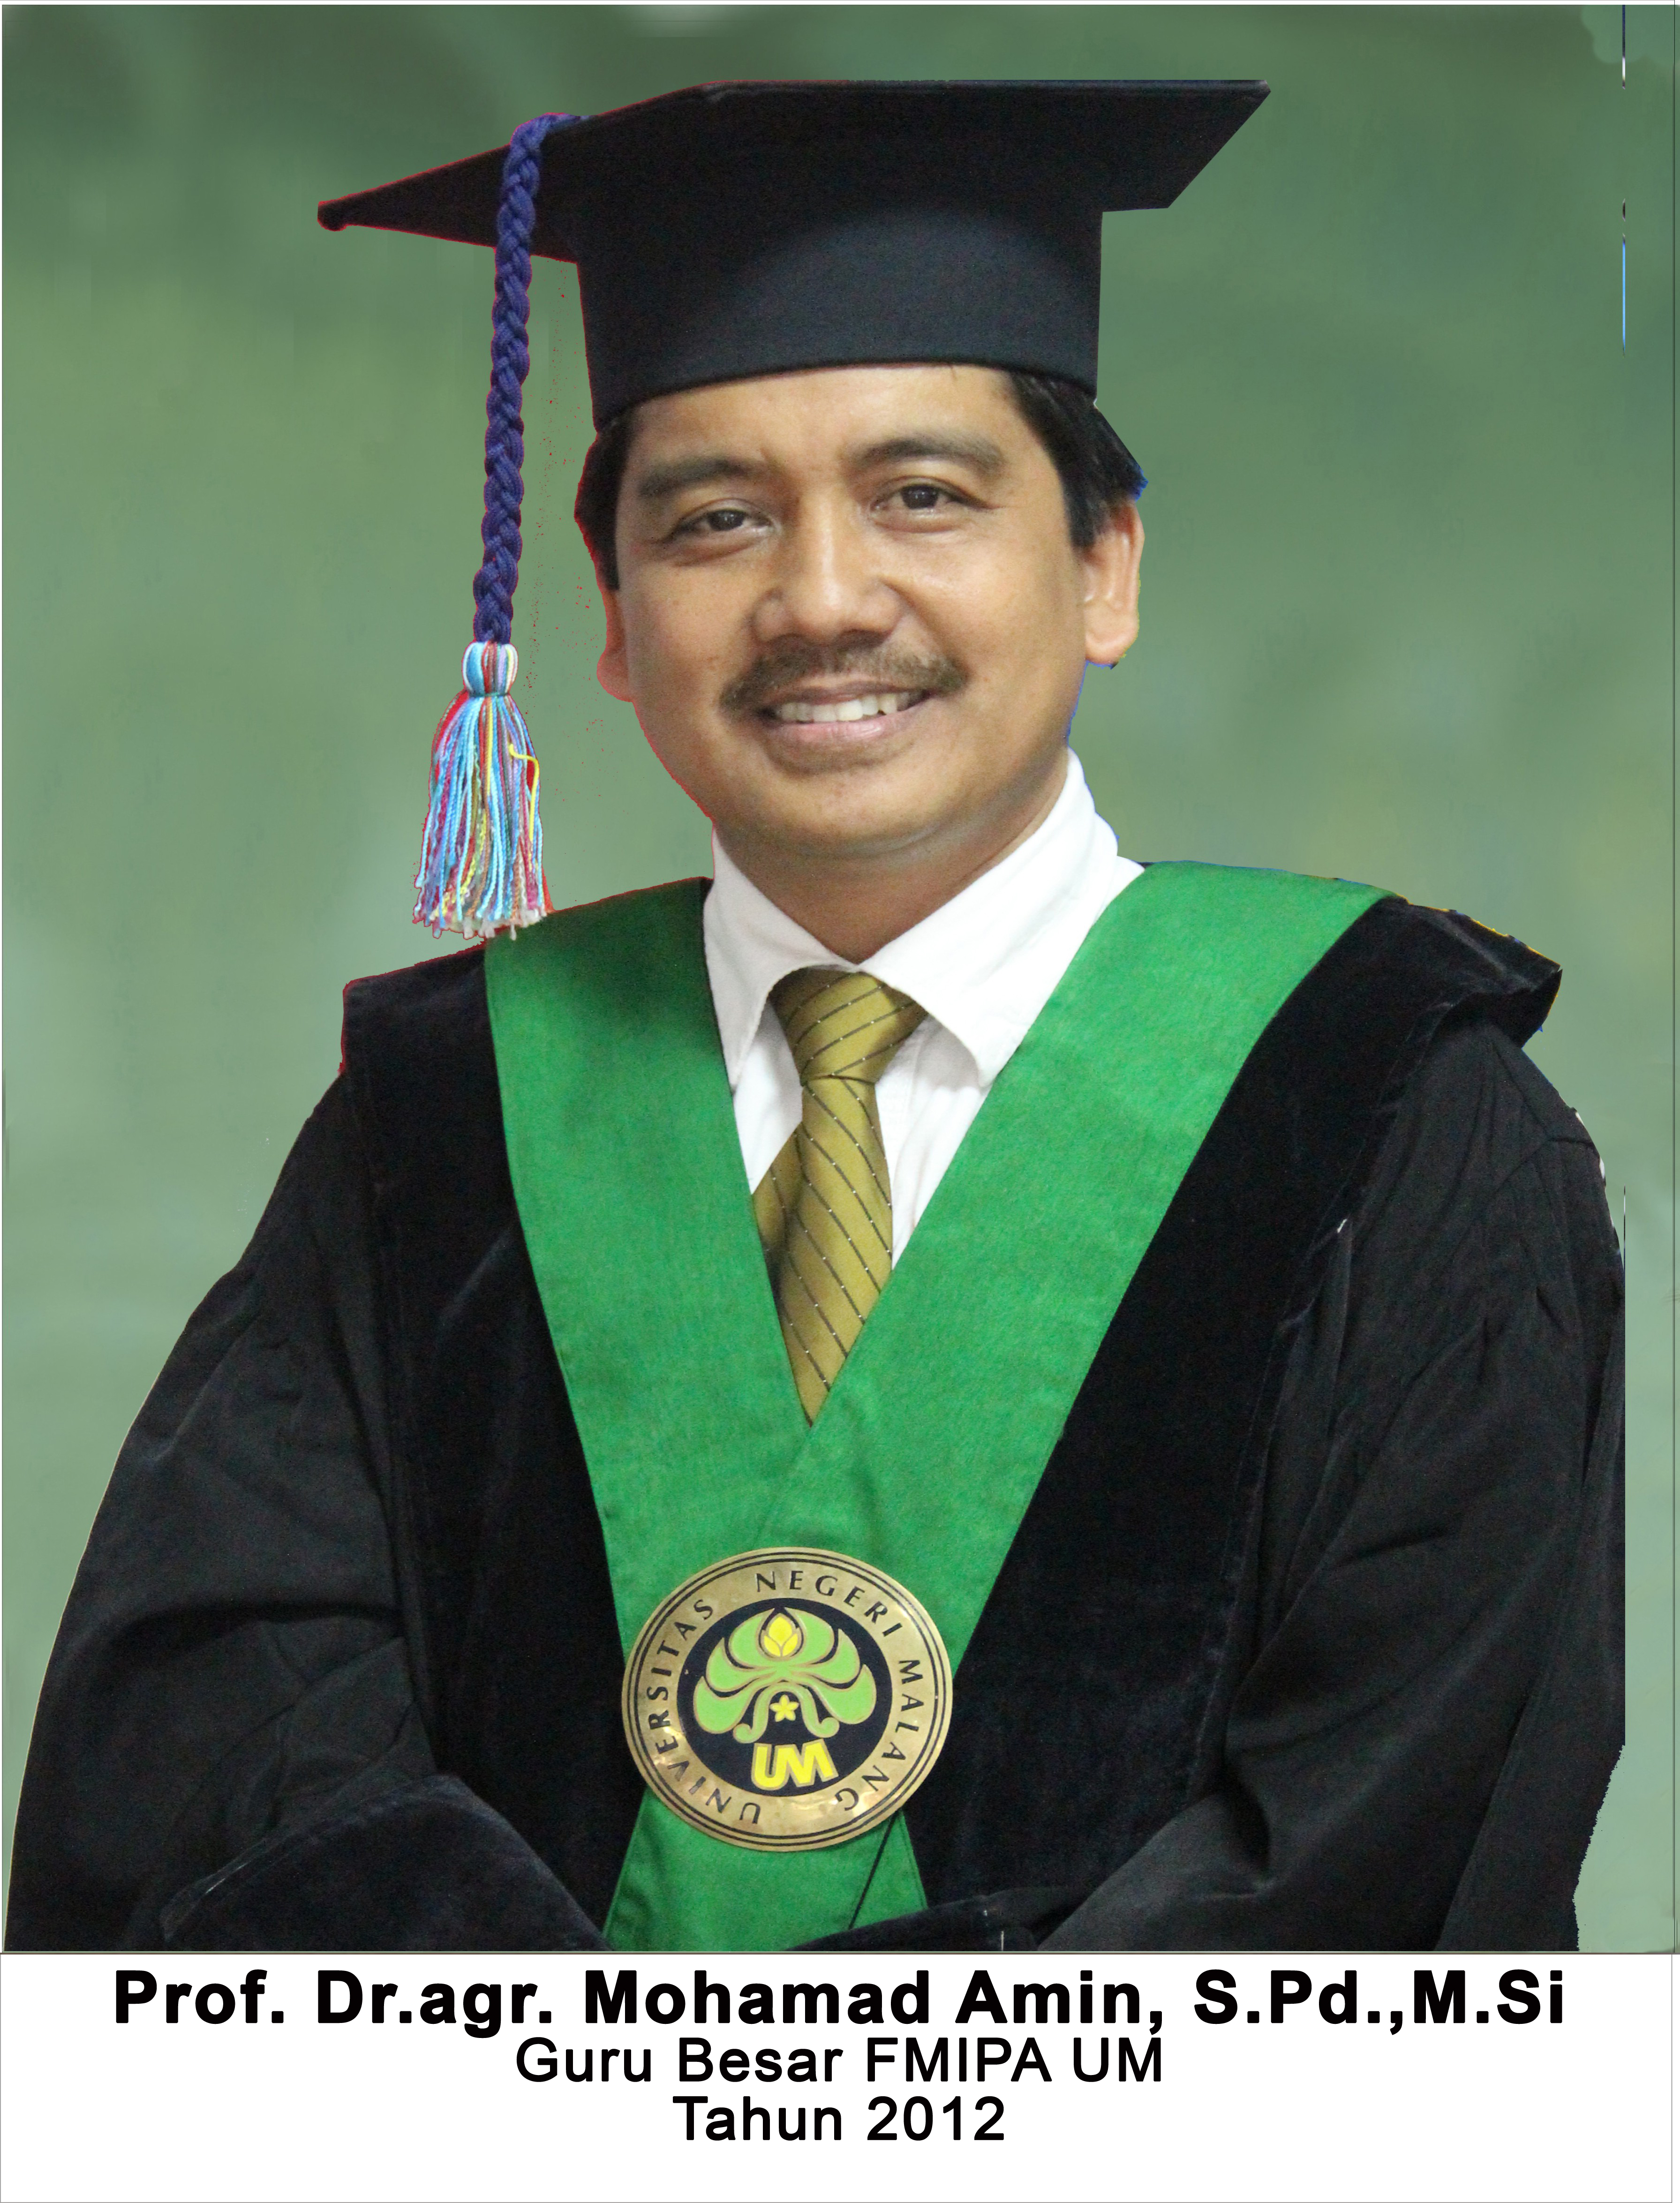 Prof. Dr. agr. Mohamad Amin, S.Pd. M.Si